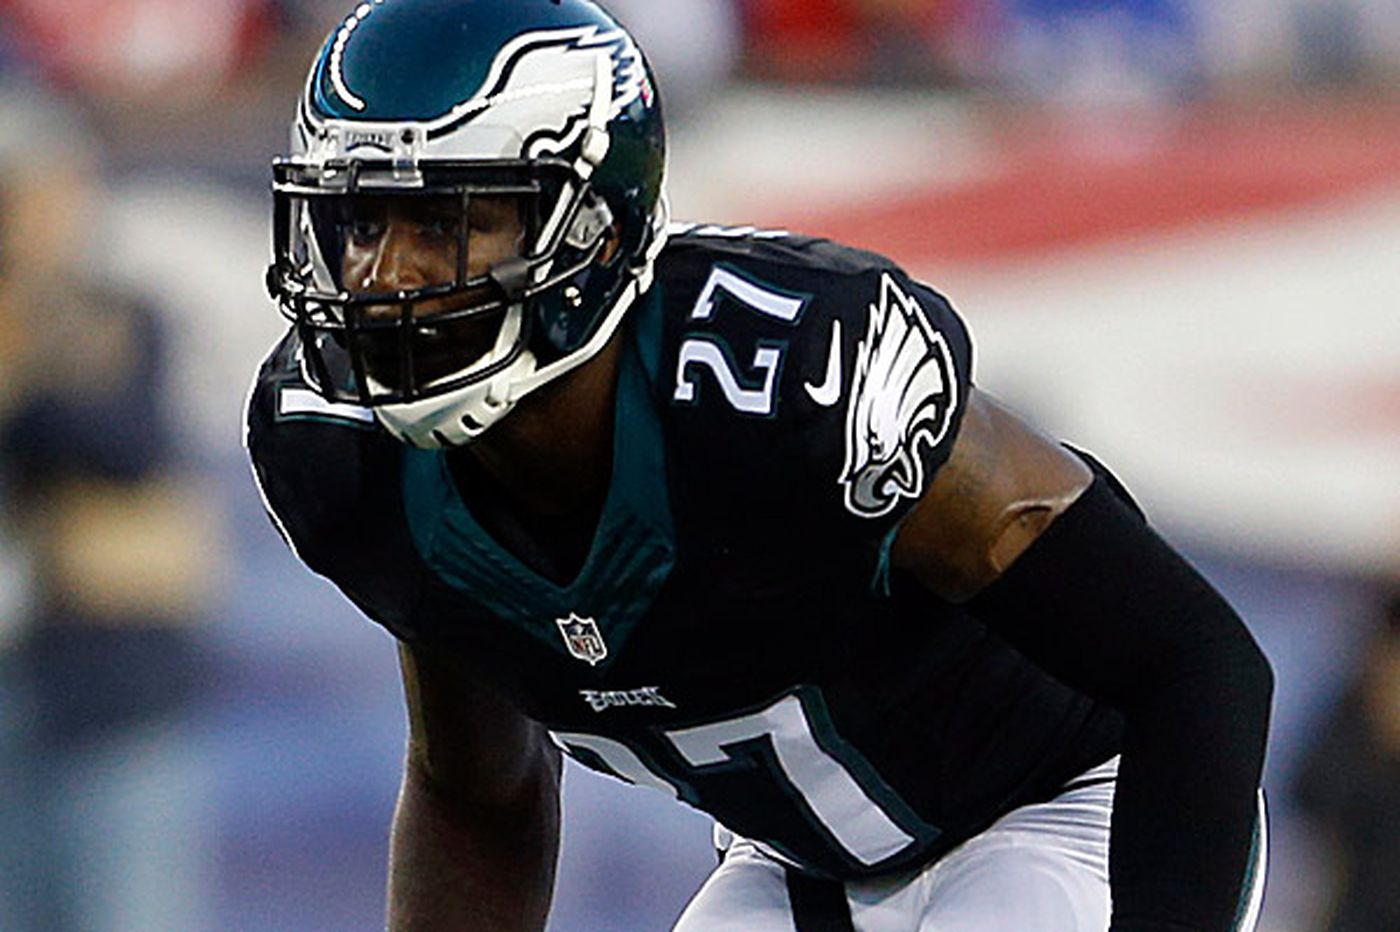 Jenkins may be key piece to elevating Eagles safeties